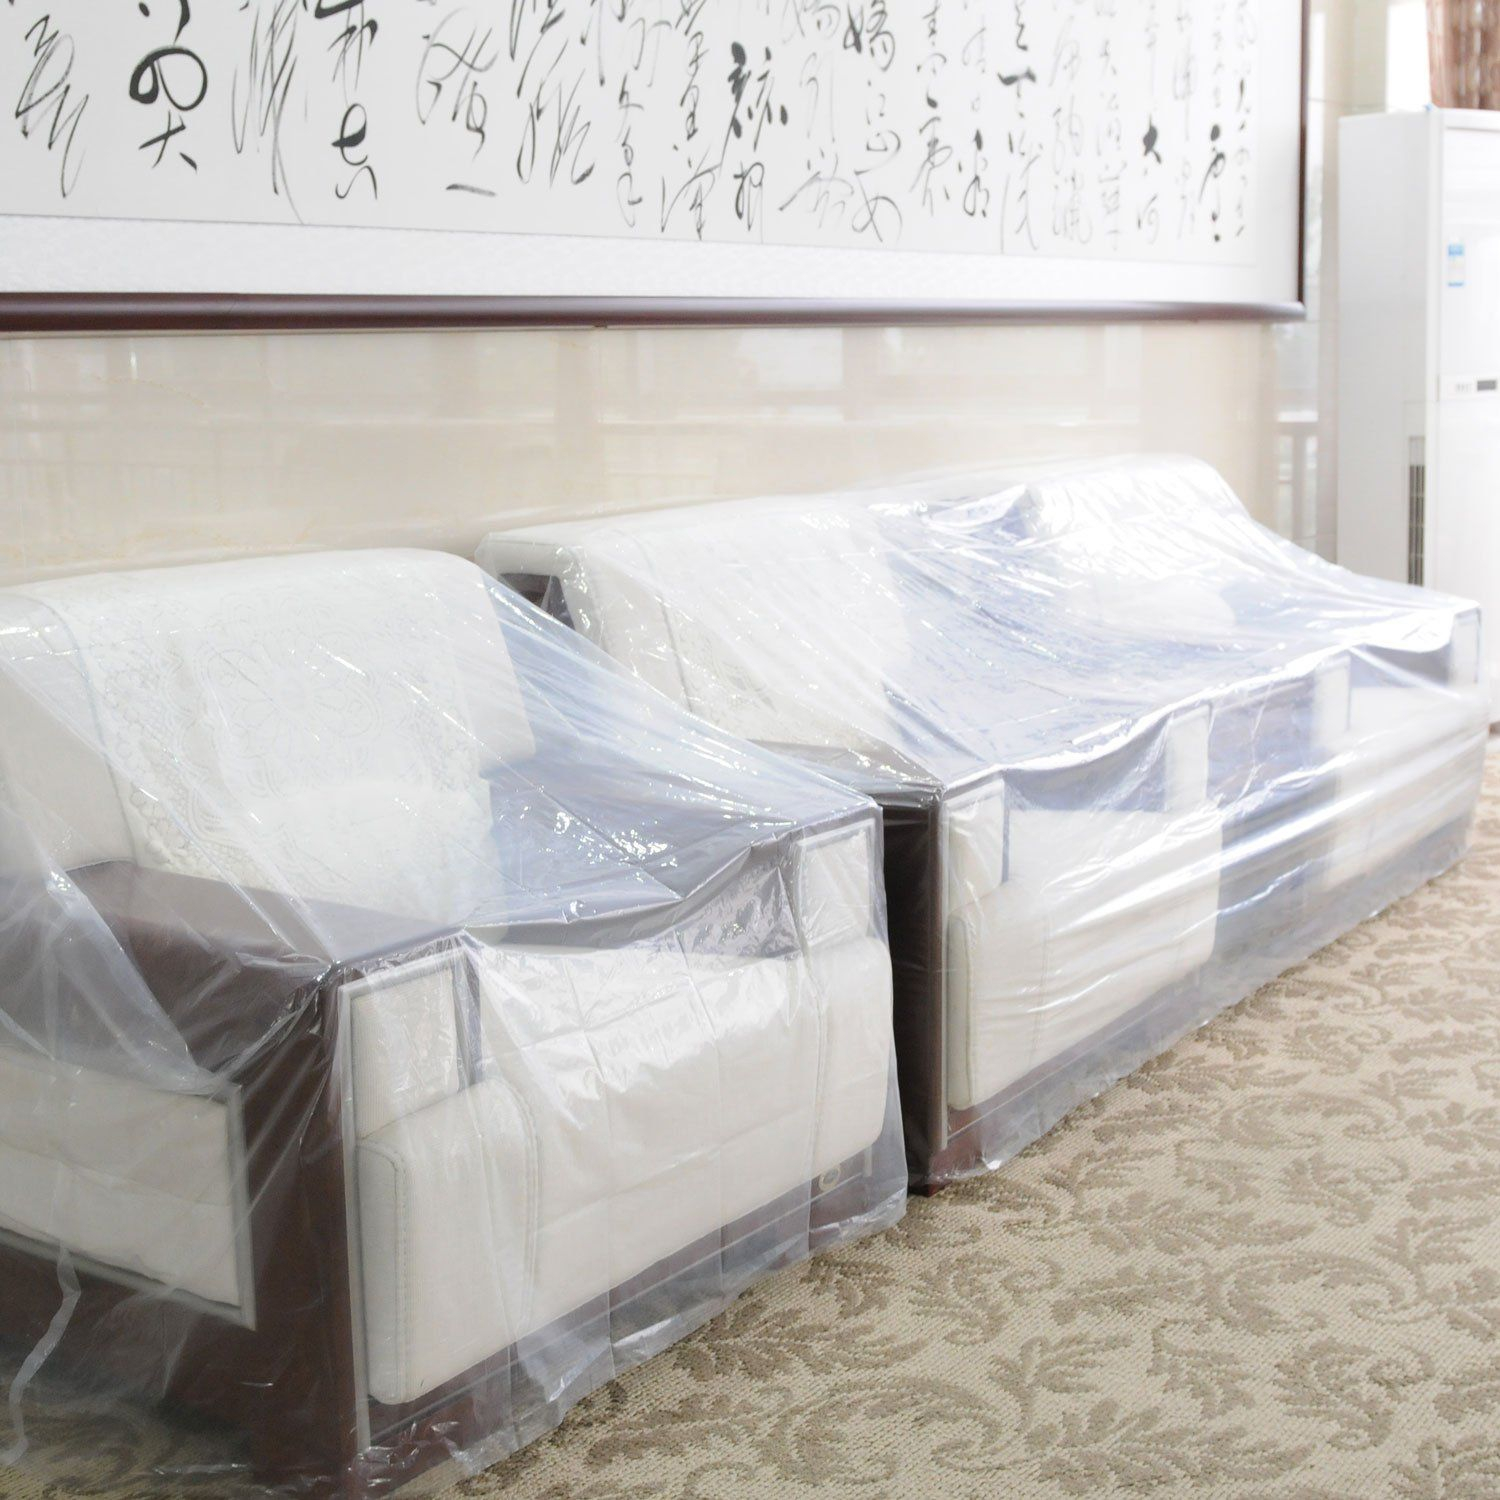 Topsoon Couch Cover For Moving Plastic Furniture Cover Clear for measurements 1500 X 1500